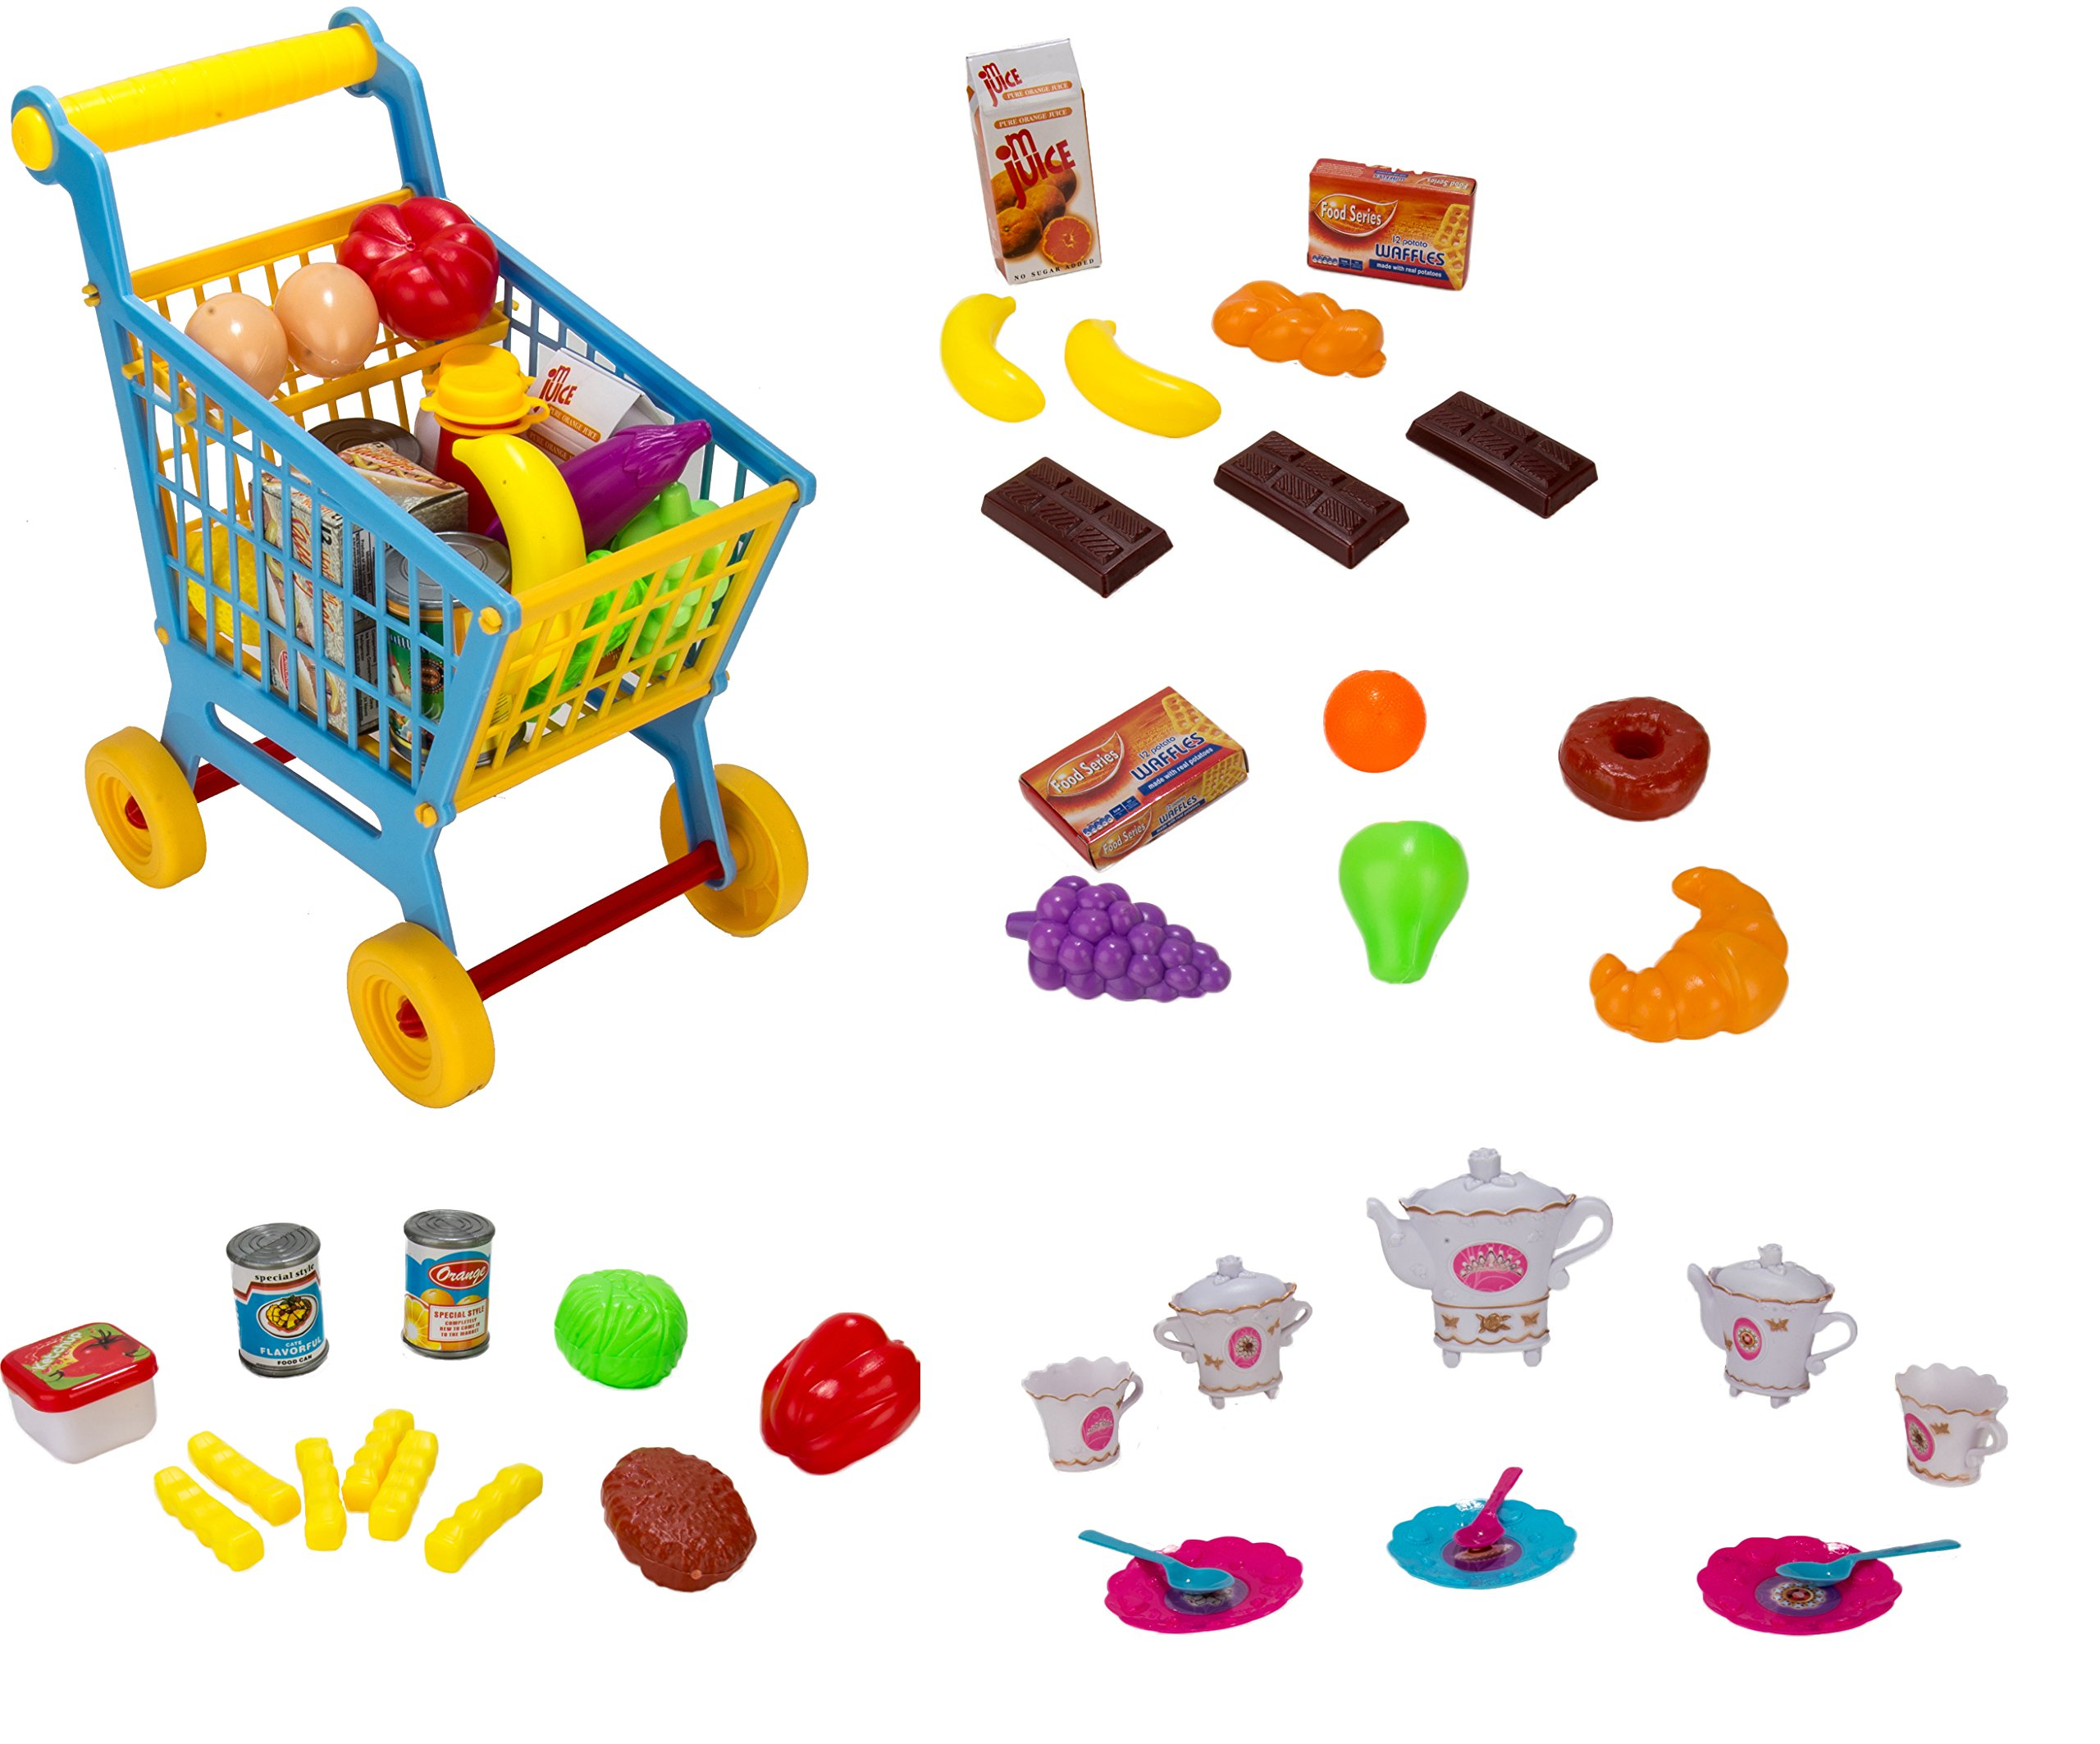 Colorful Pretend Play 4 in 1 Kid Shopping Cart and Grocery and Assorted Desert and Fast Food and Lunch Break Princess Tea Set Gift